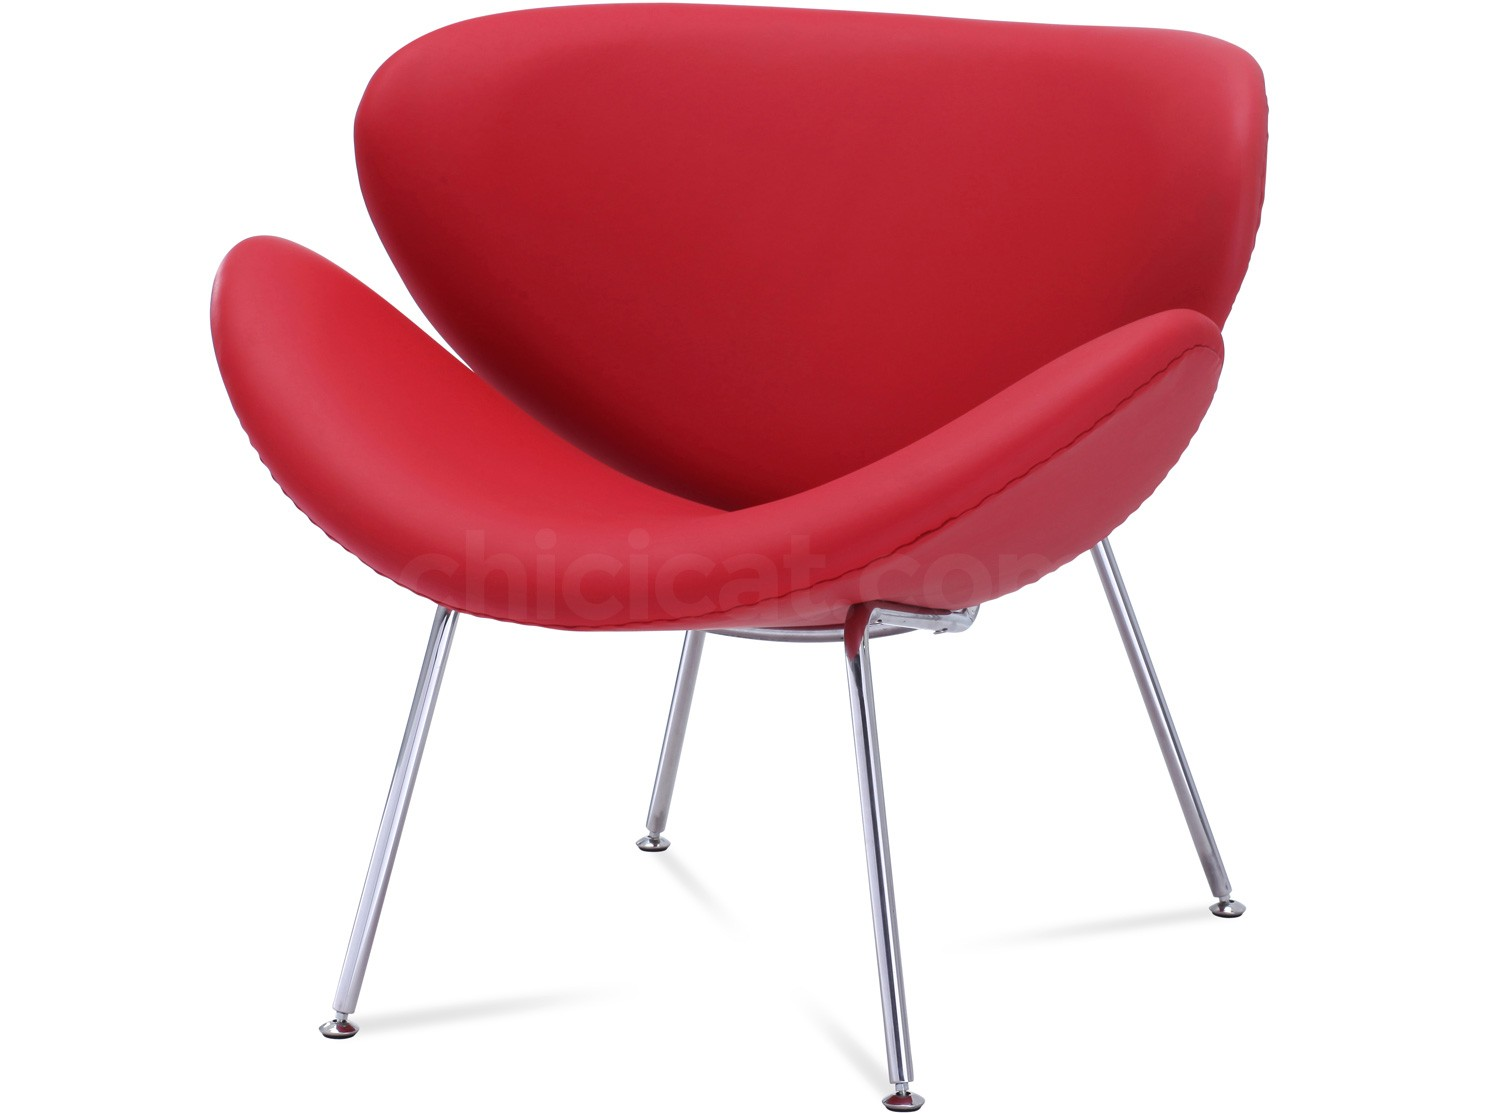 Pictured In Red Aniline Leather (Italian Imported)